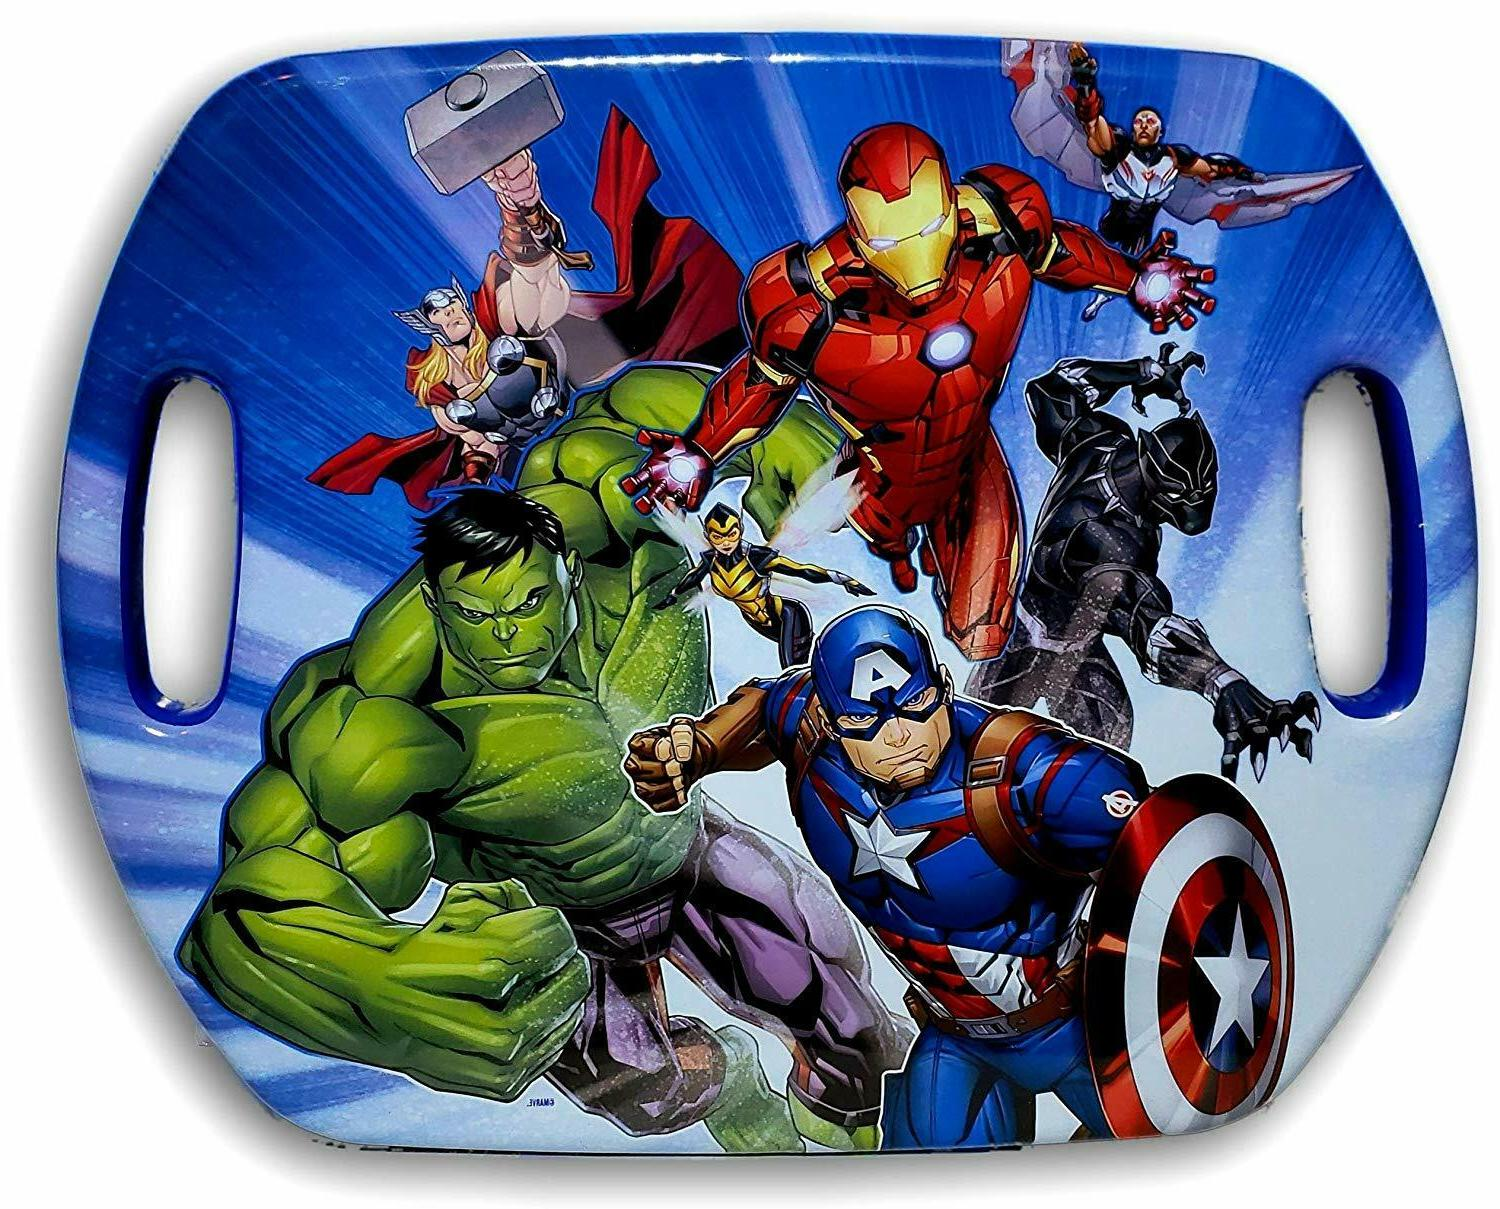 Avengers Spin Scoot Caster Roller Casters